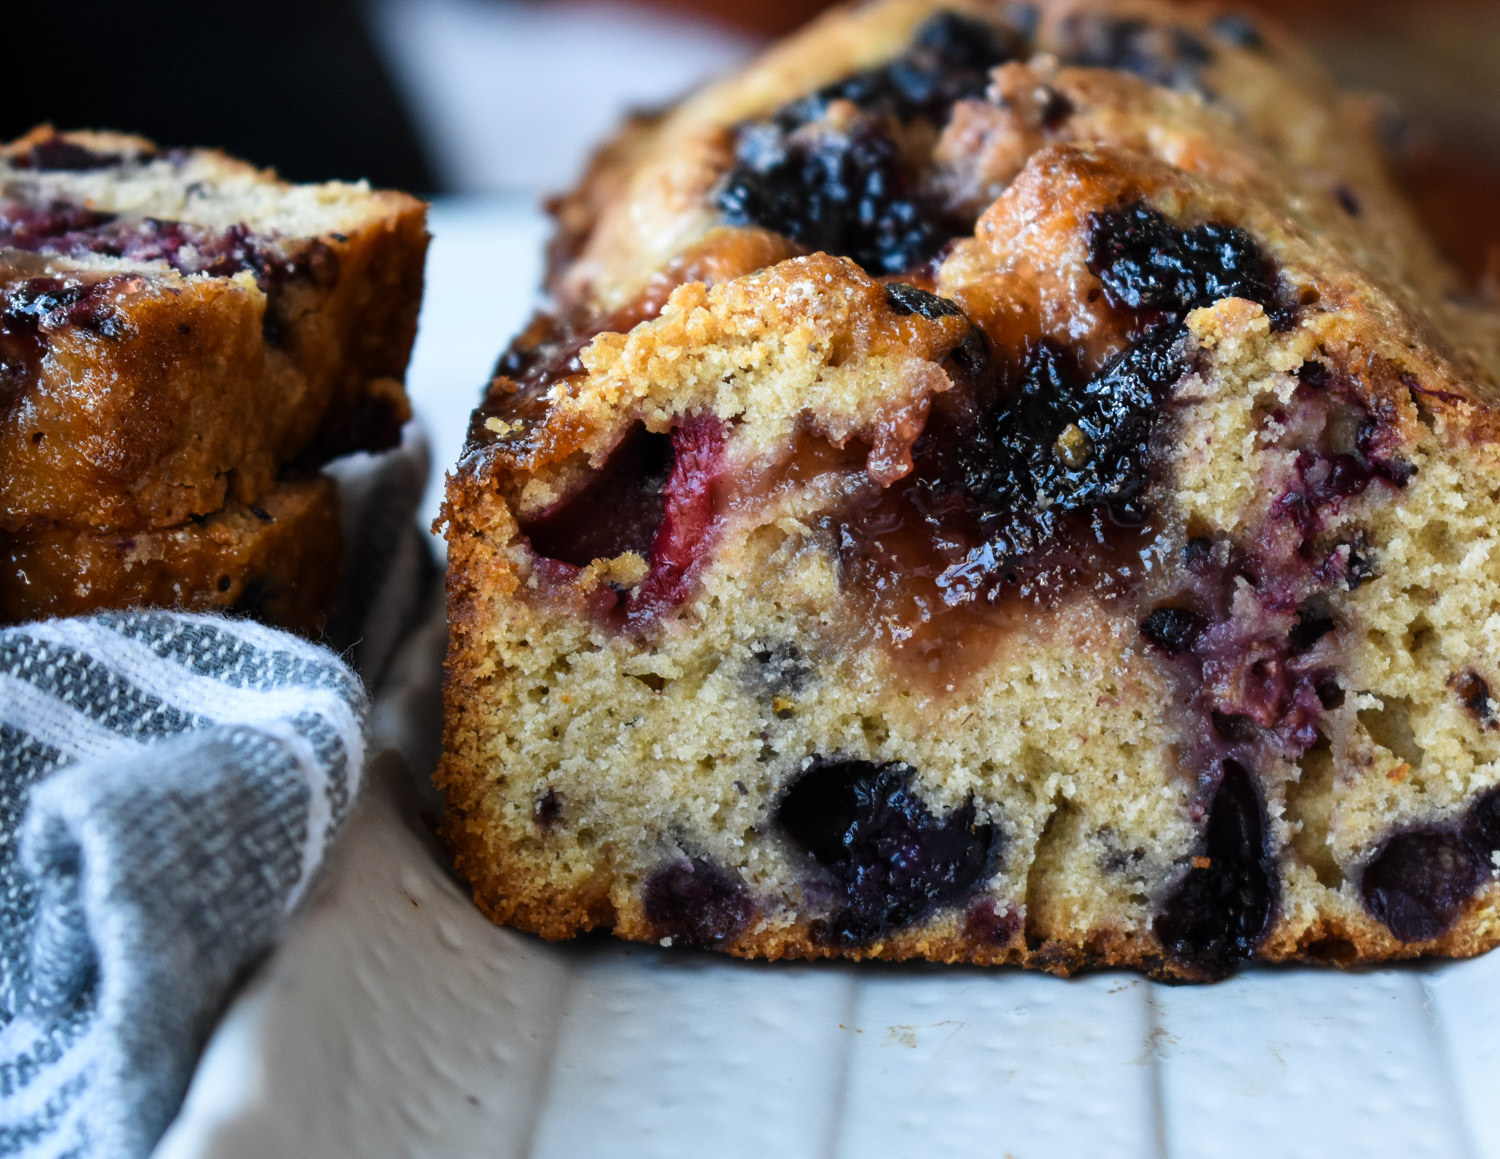 Mixed berry cake with a jam center.